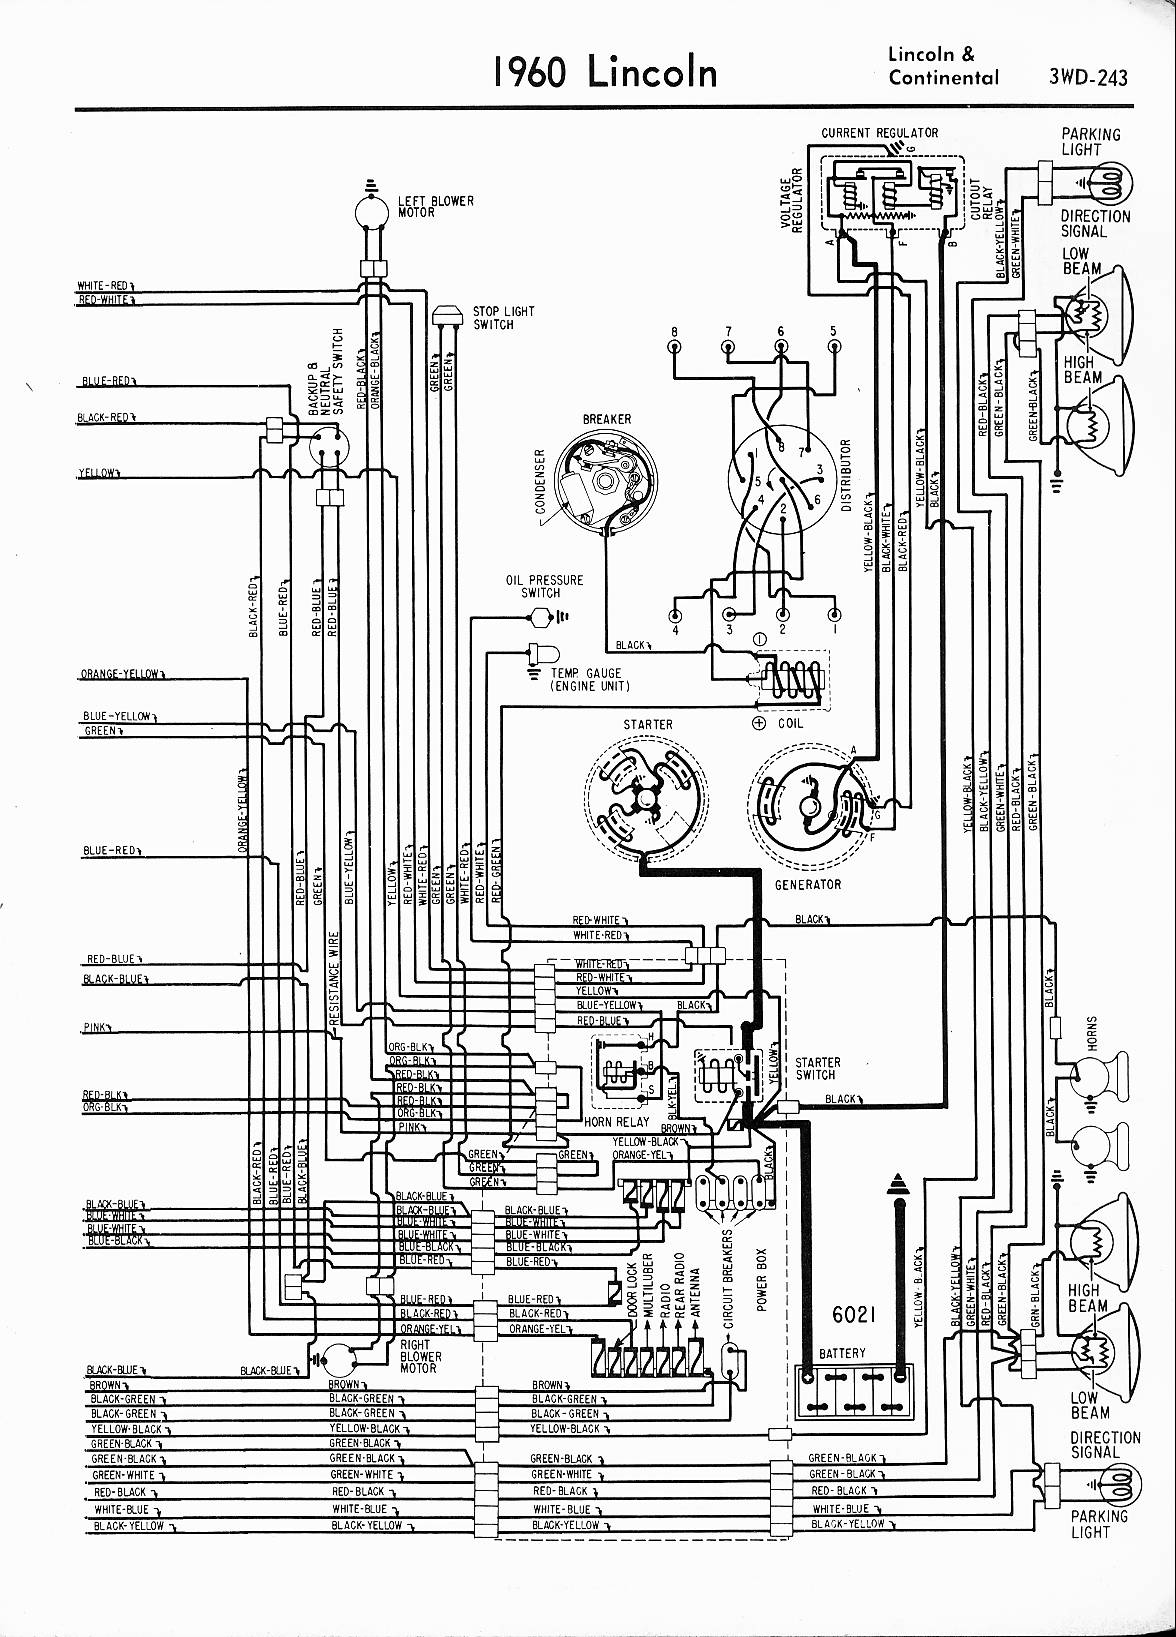 1960 lincoln wiring diagram schematics wiring diagrams u2022 rh  schoosretailstores com 05 Cavalier Engine Wiring Harness Diagram 1991 Mazda  B2200 Engine ...